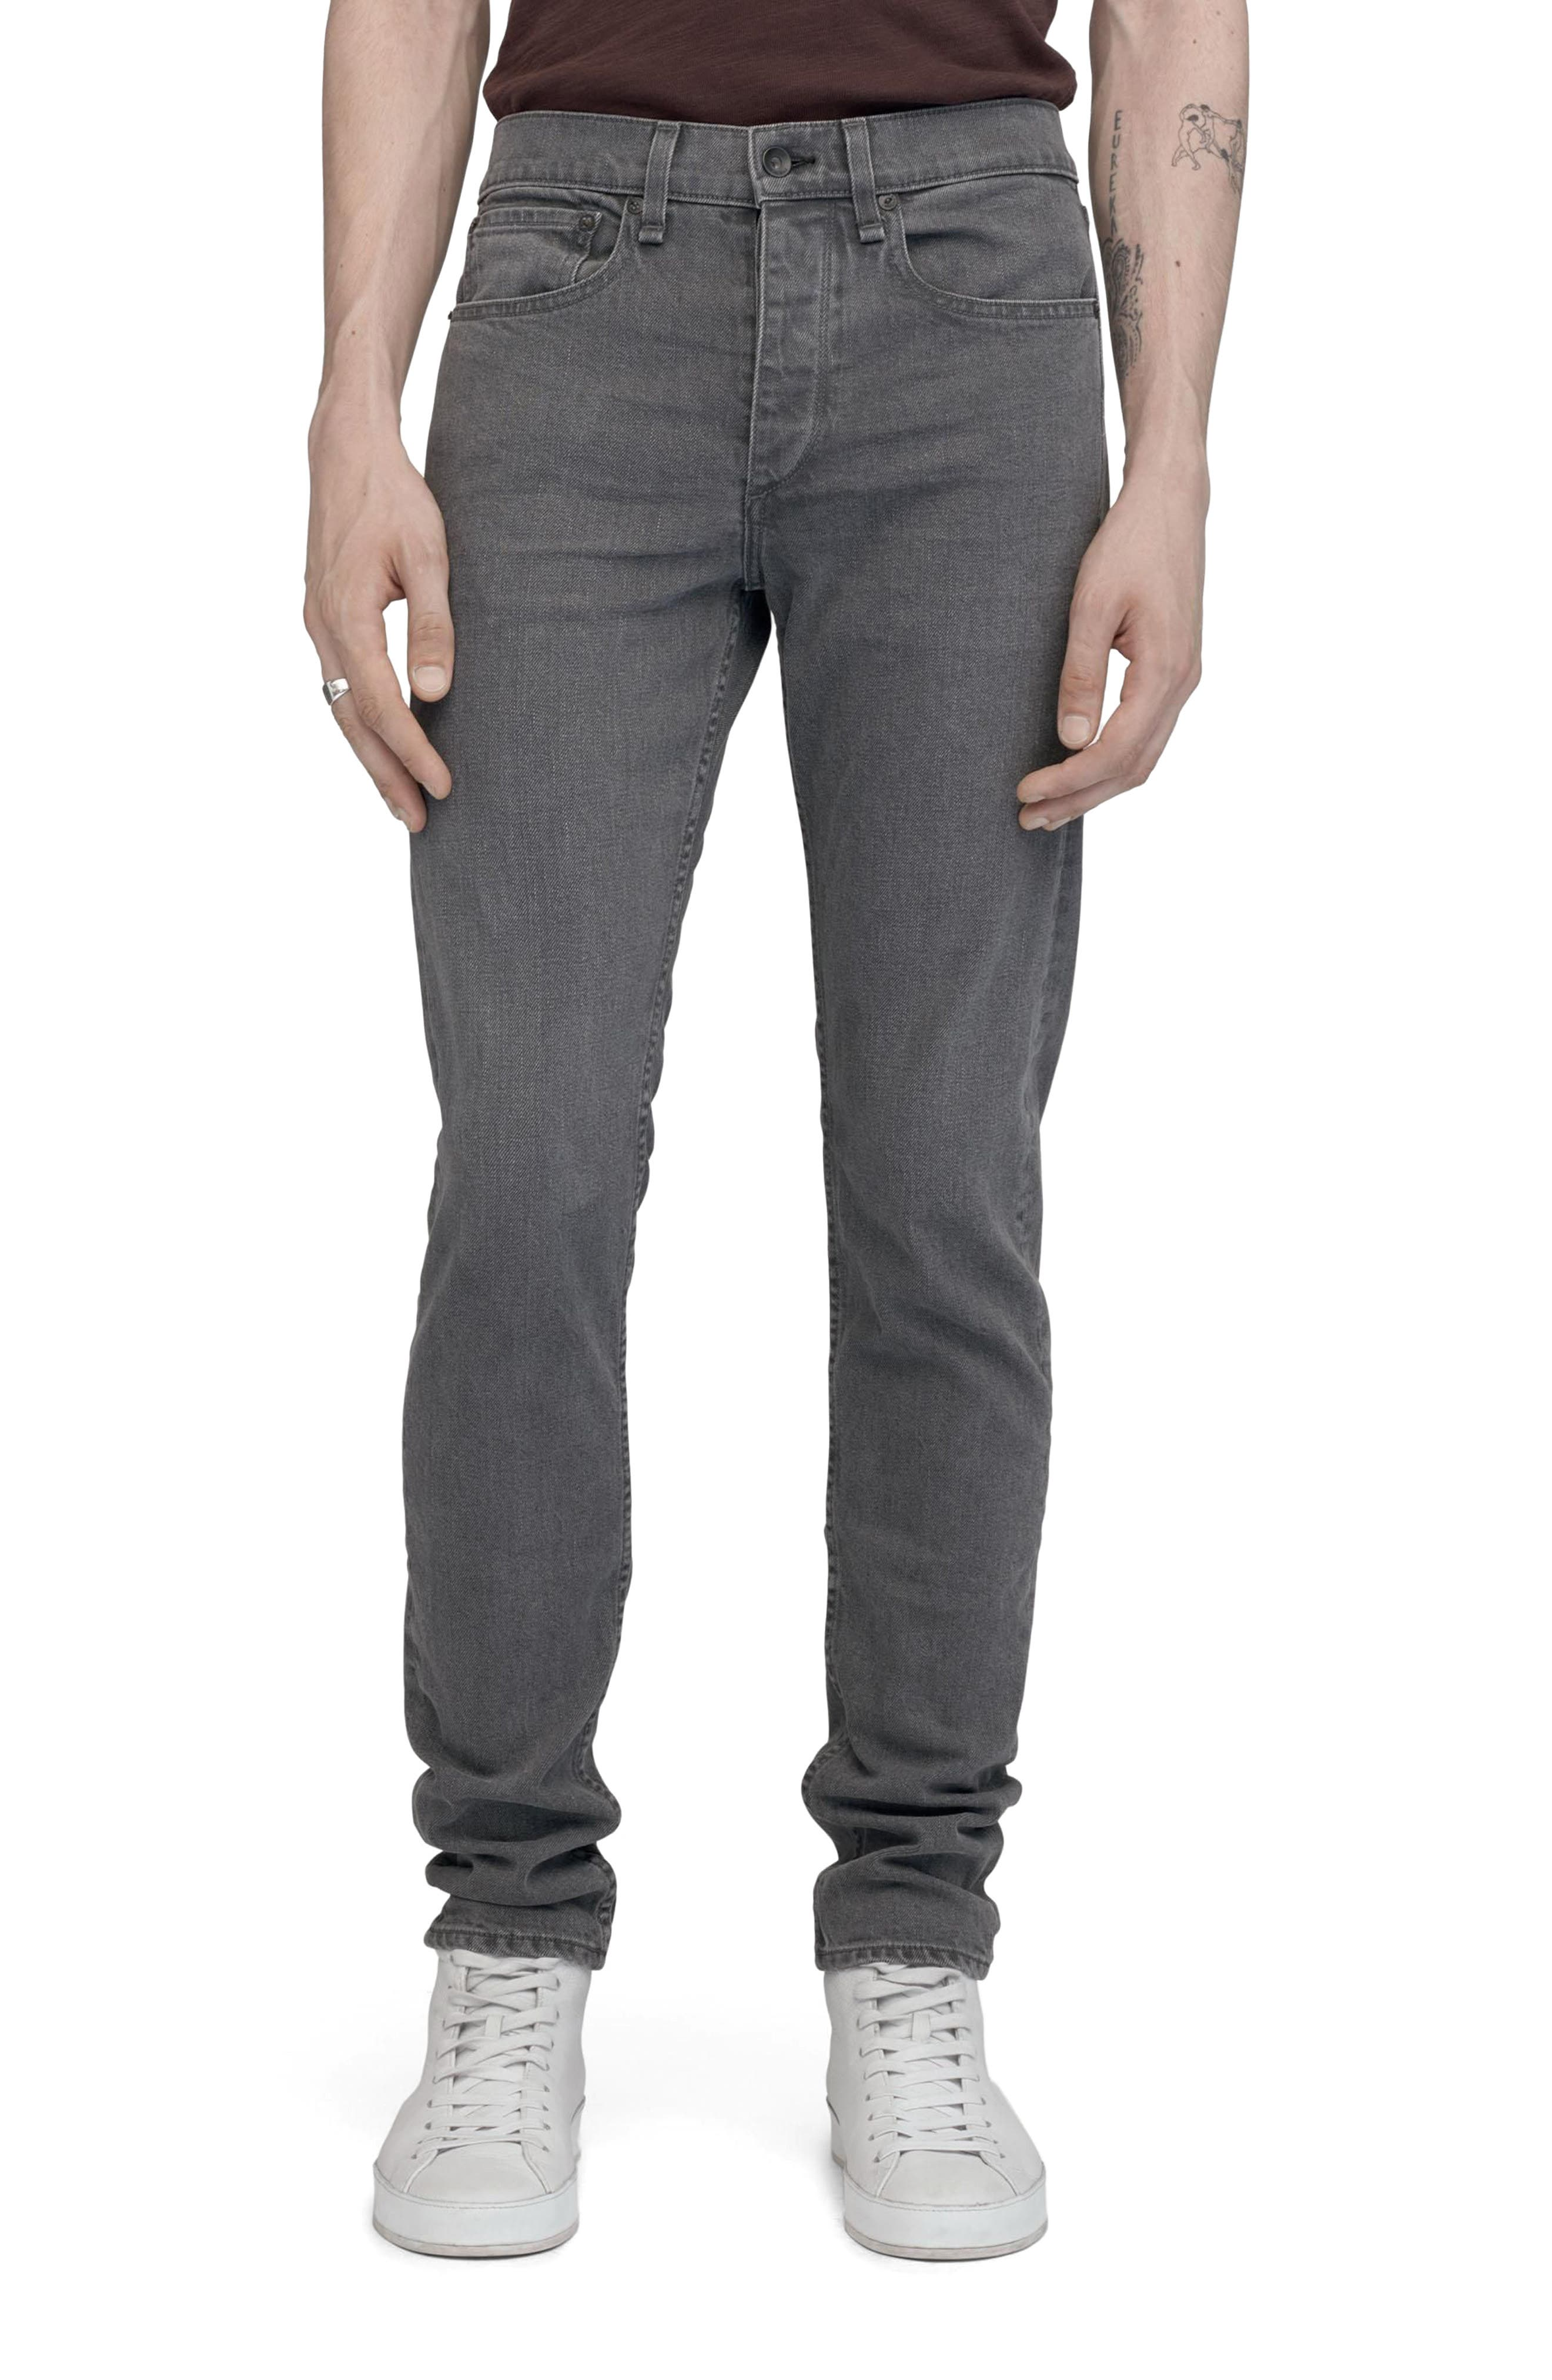 Fit 1 Skinny Fit Jeans,                         Main,                         color, VESUVIO